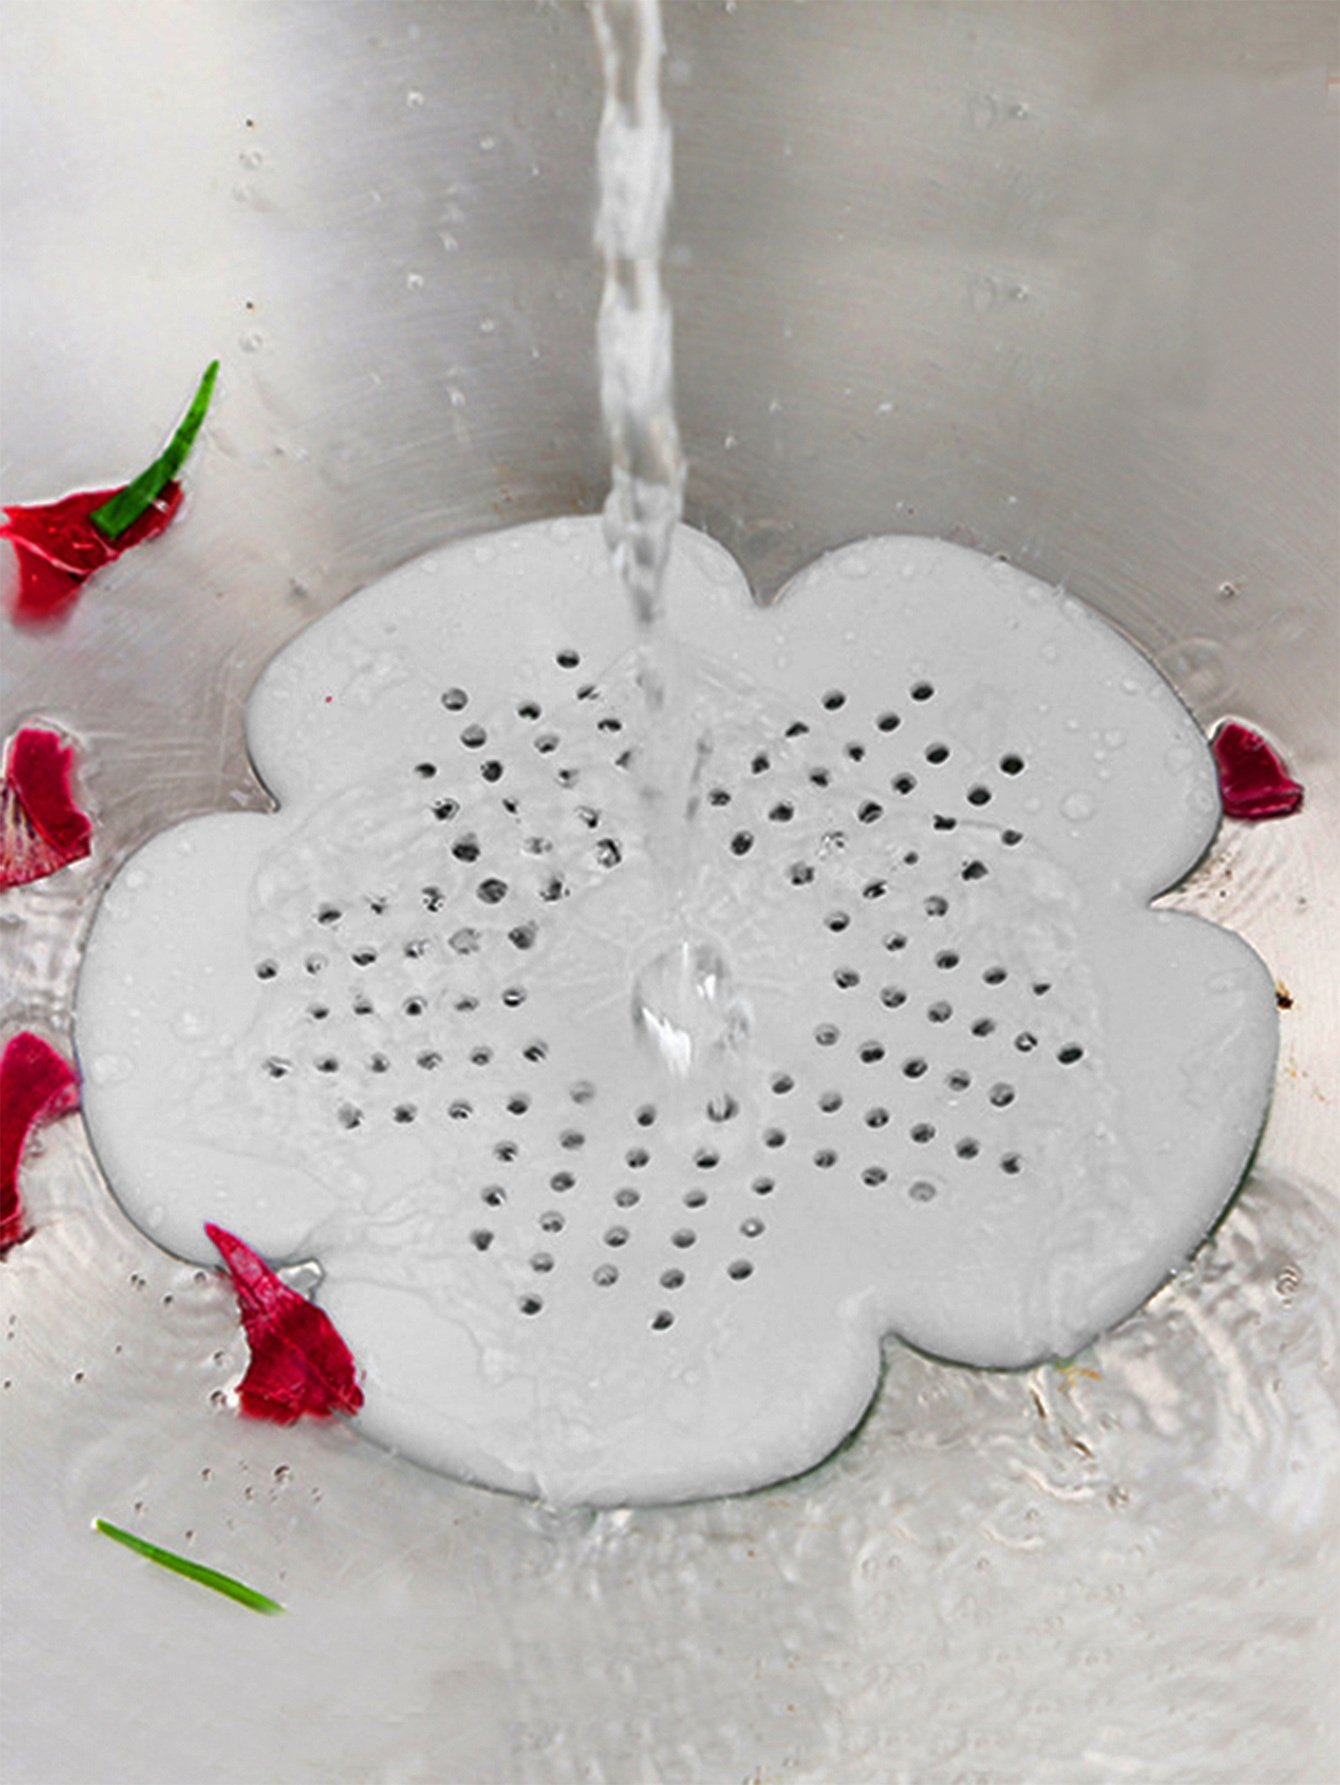 Flower Shaped Sink Filter